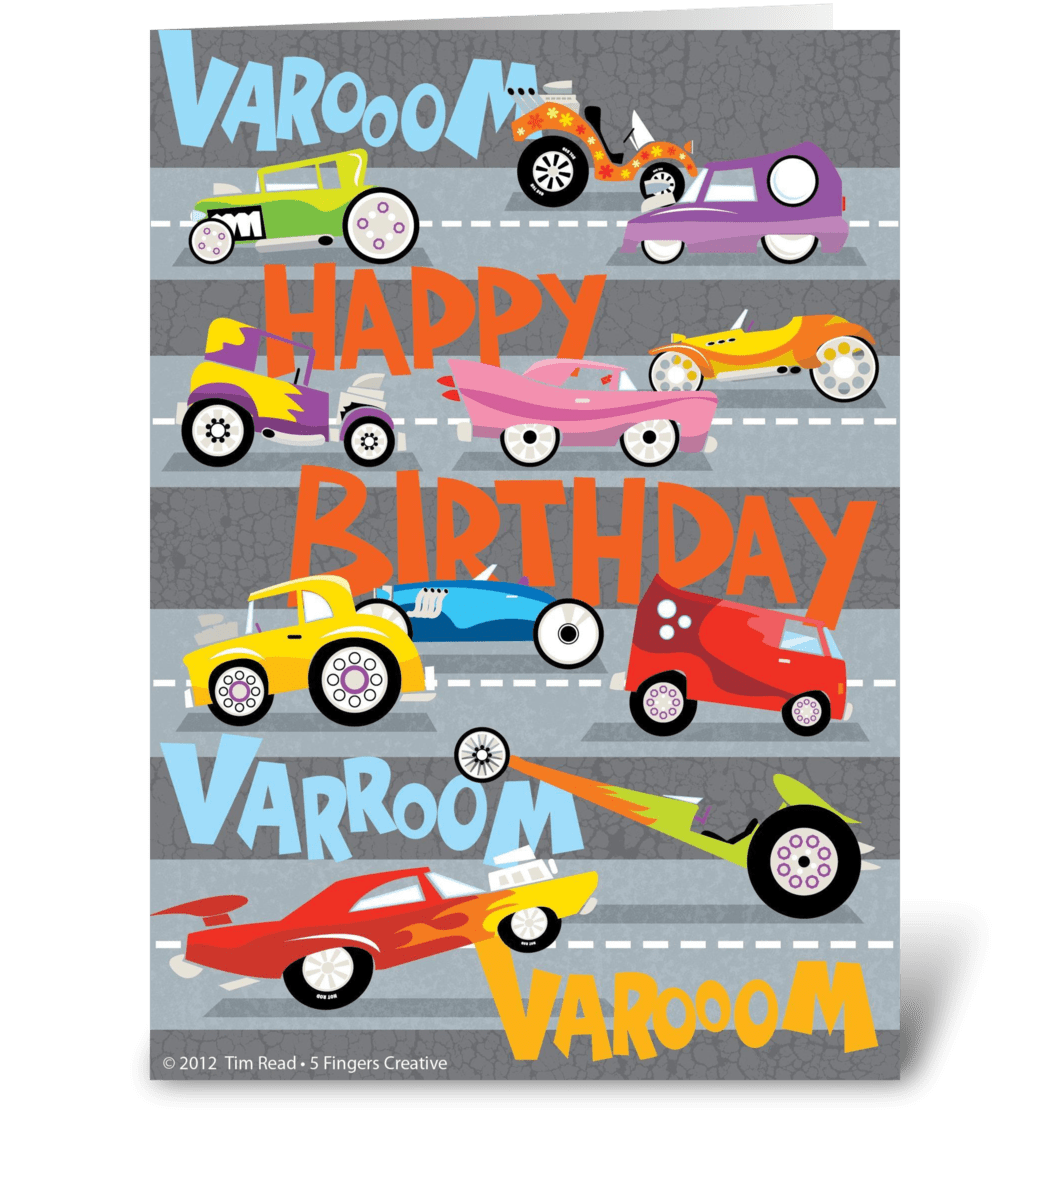 Hot Rod Birthday Send This Greeting Card Designed By Tim Read Illustration Card Gnome